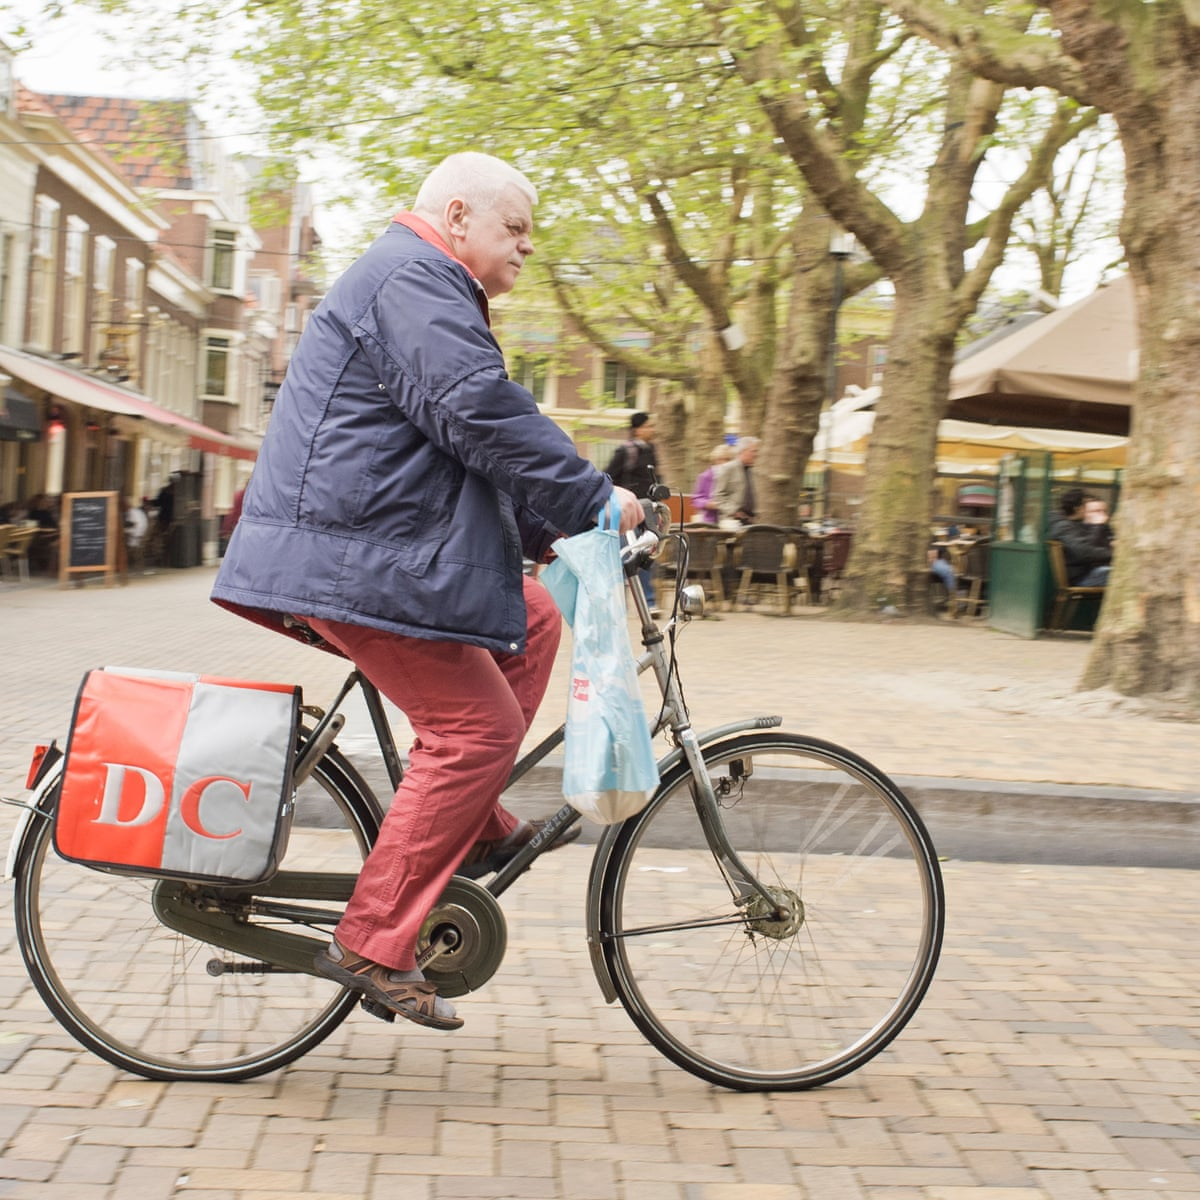 Older Dutch cyclists warned after rise in electric bike deaths   Netherlands    The Guardian